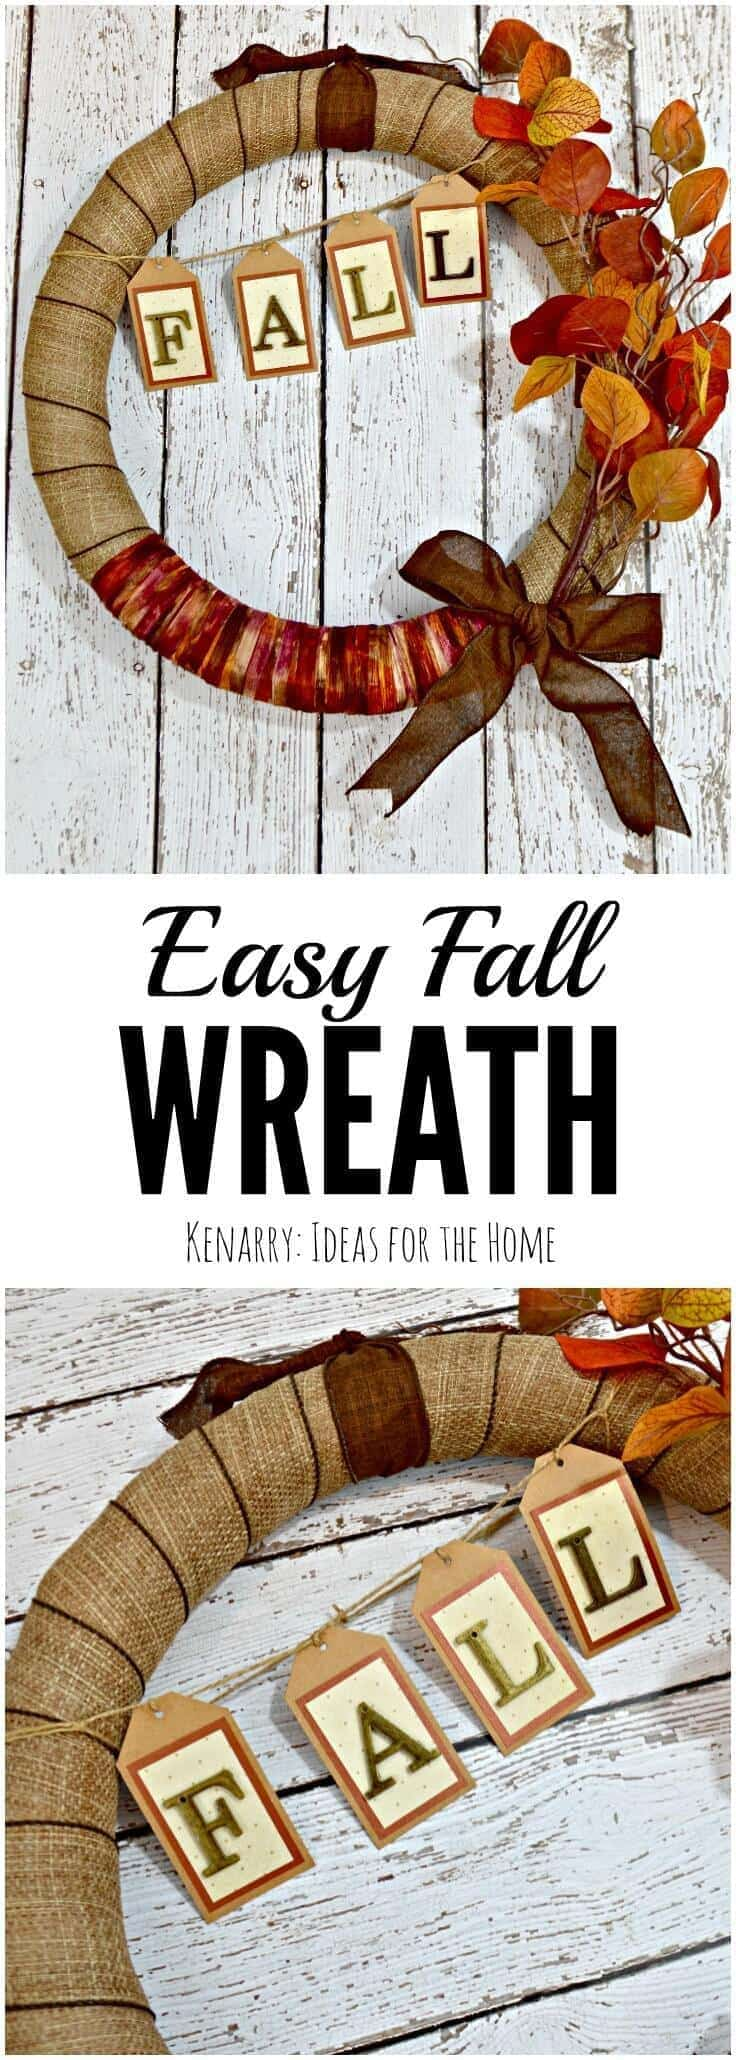 This autumn wreath is a beautiful craft idea! I love how easy it is to follow this step-by-step fall burlap wreath tutorial to make one for my own home decor.